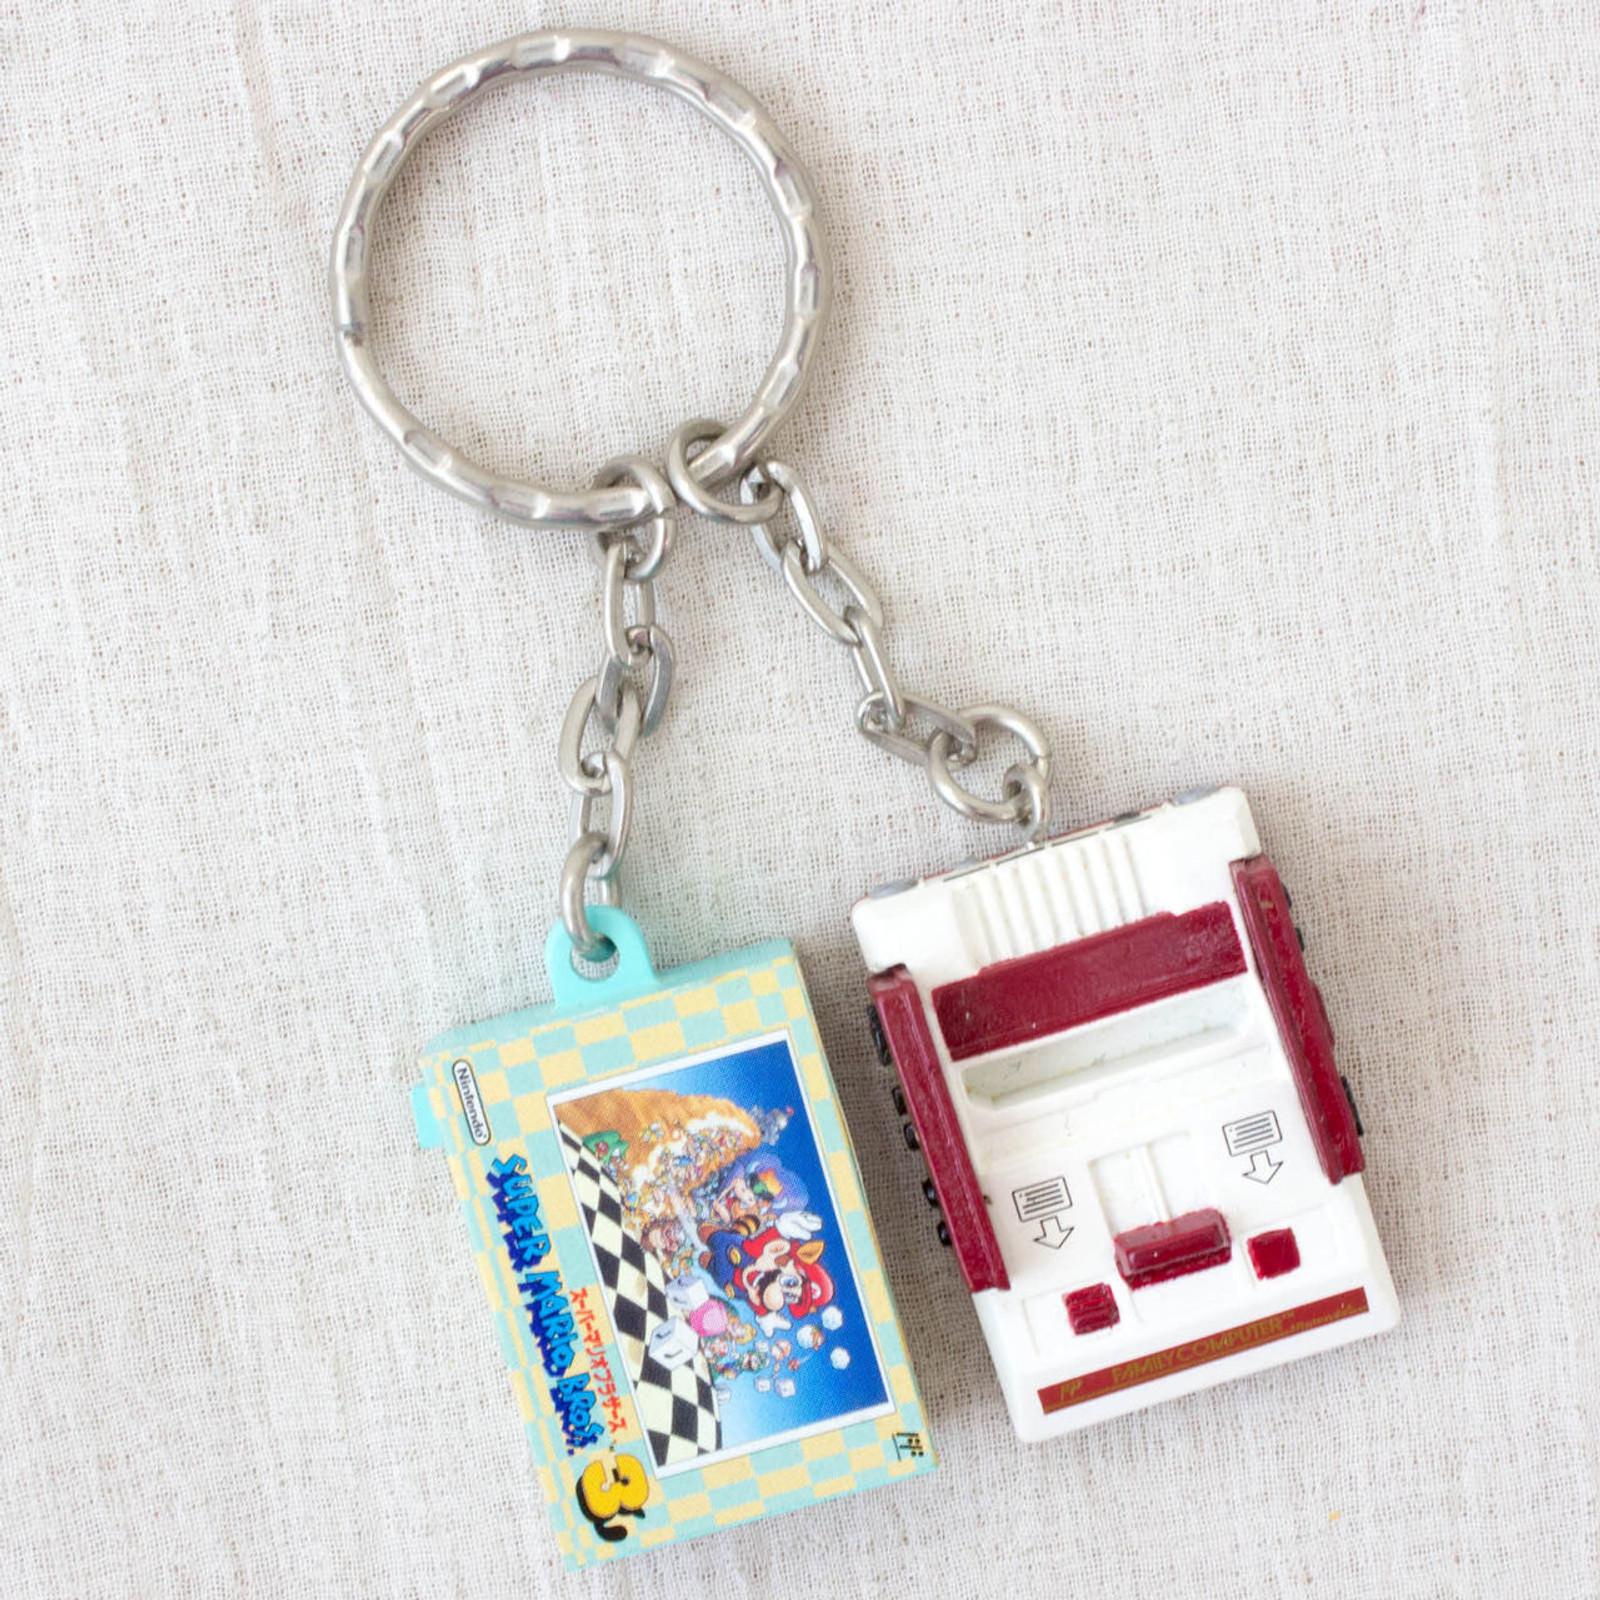 Nintendo Game Console Miniature Figure Key Chain Famicom & Super Mario 3 NES 2